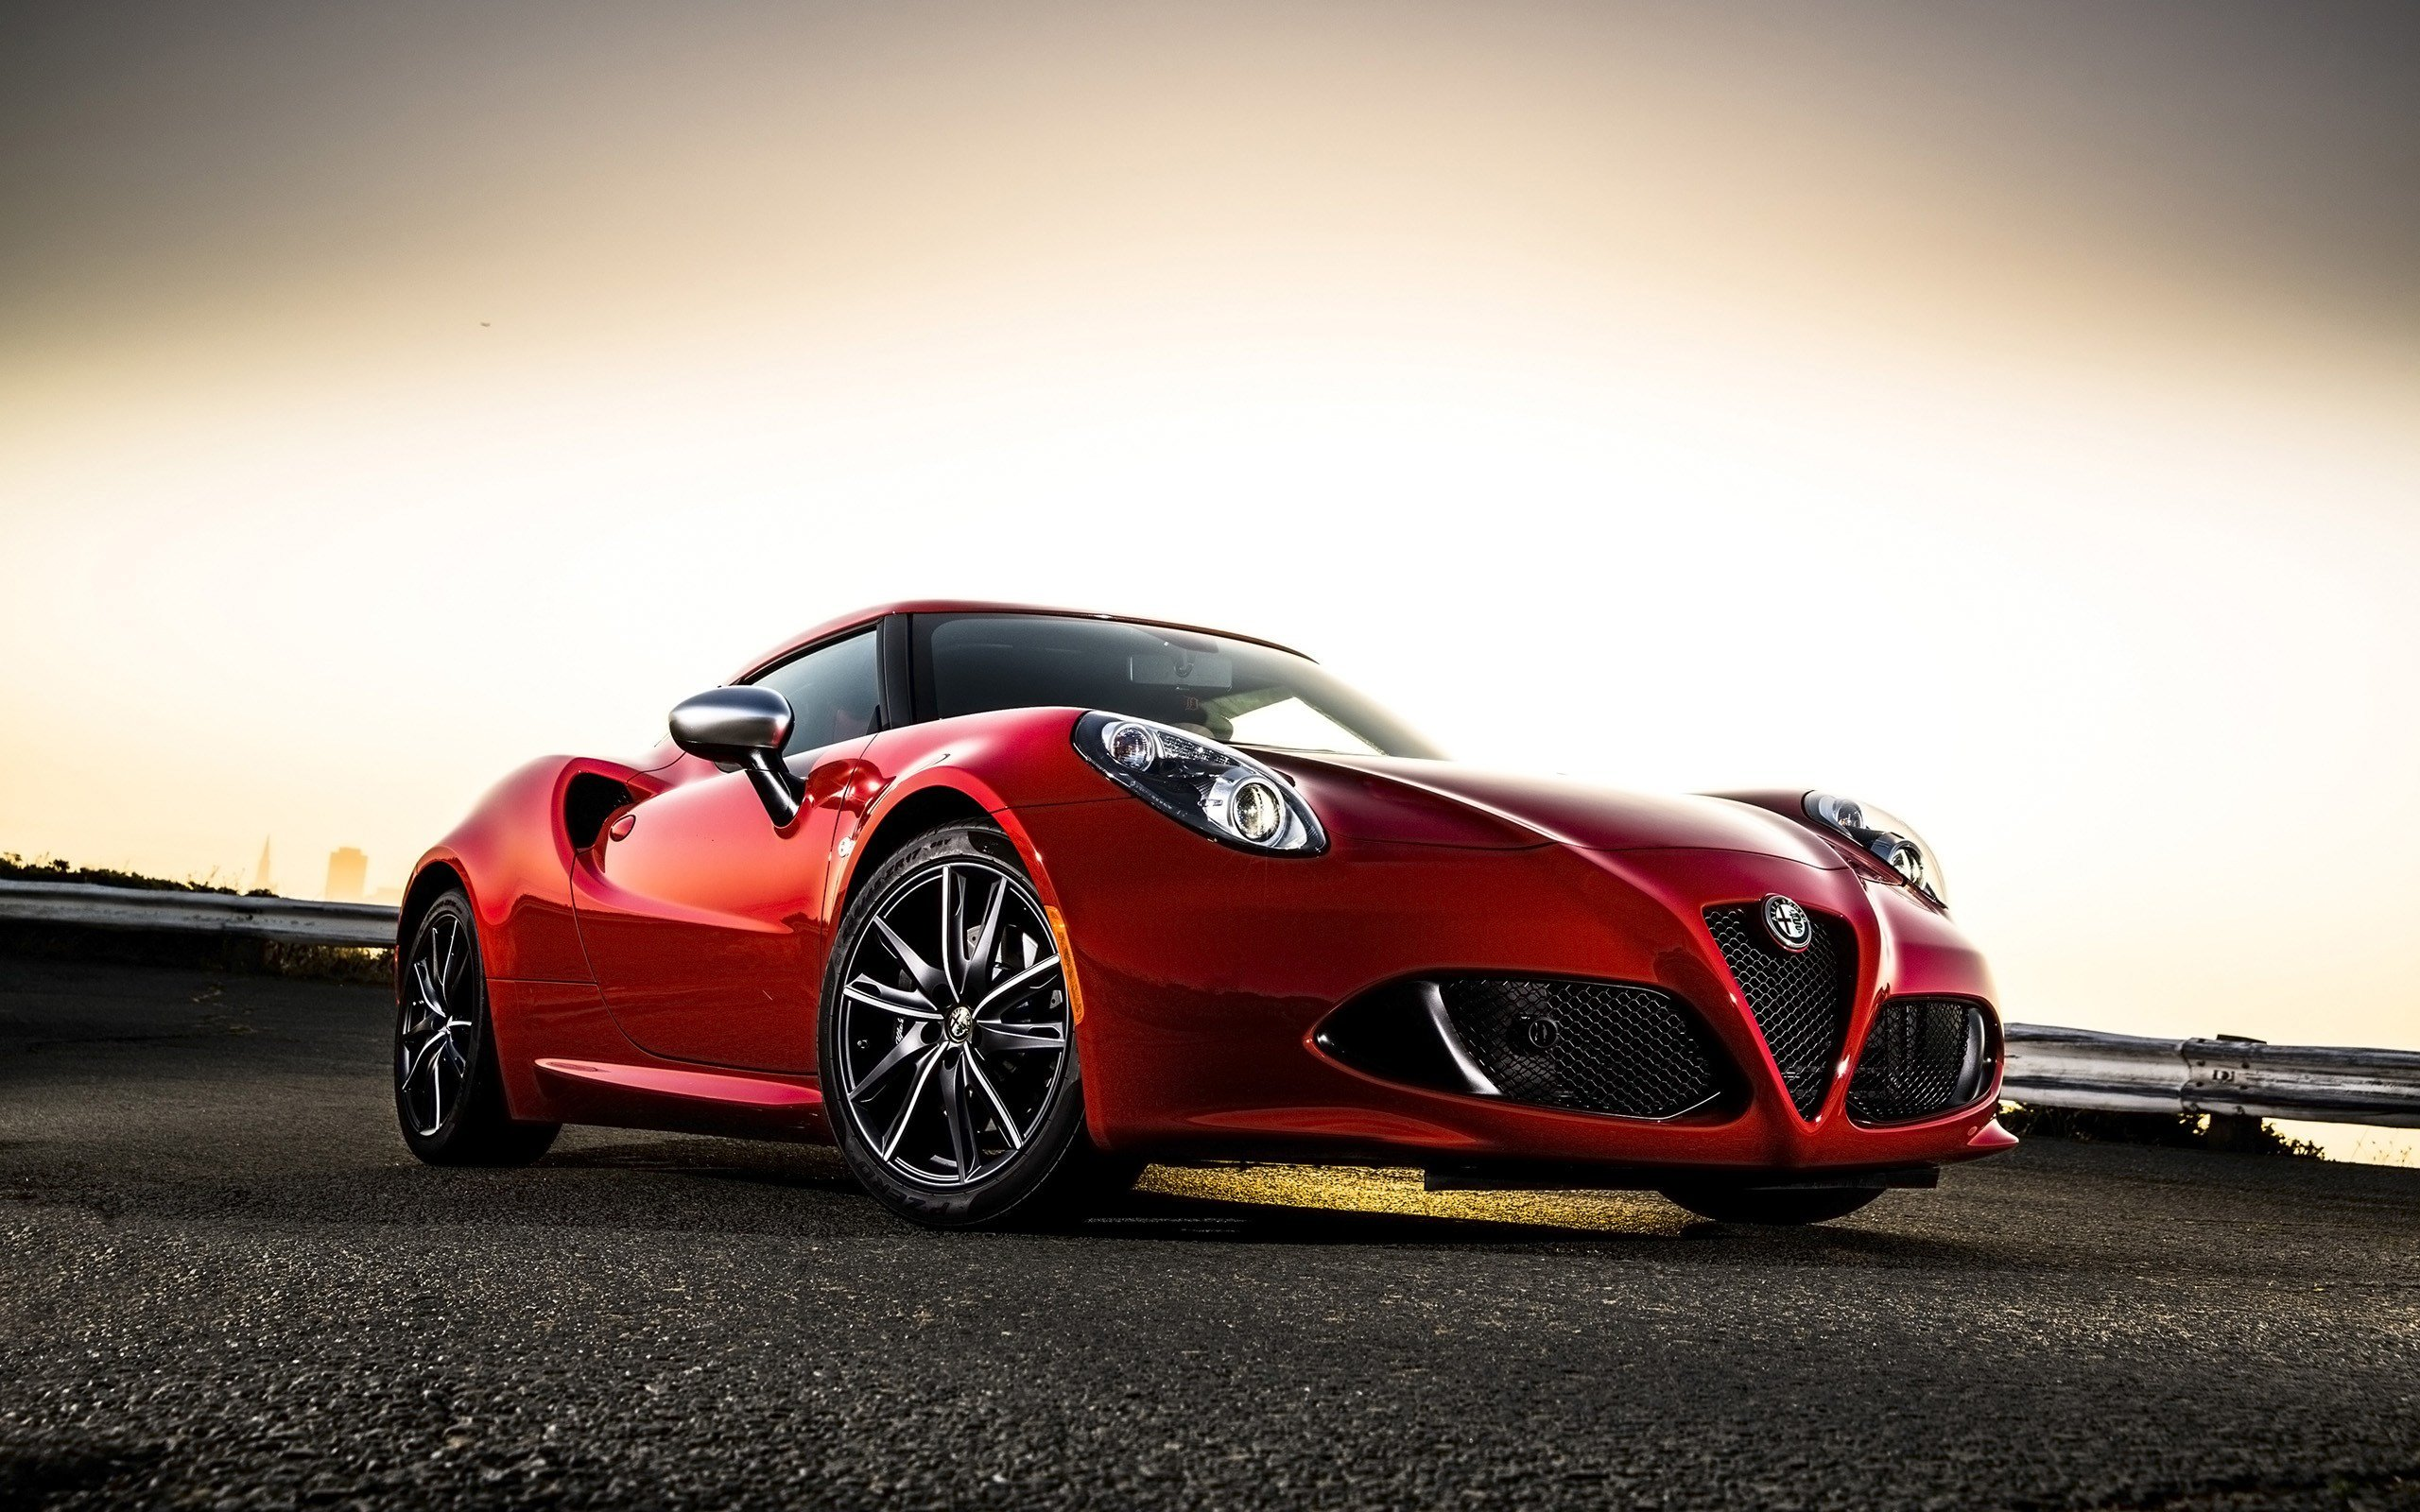 Latest 2015 Alfa Romeo 4C Wallpaper Hd Car Wallpapers Id 4632 Free Download